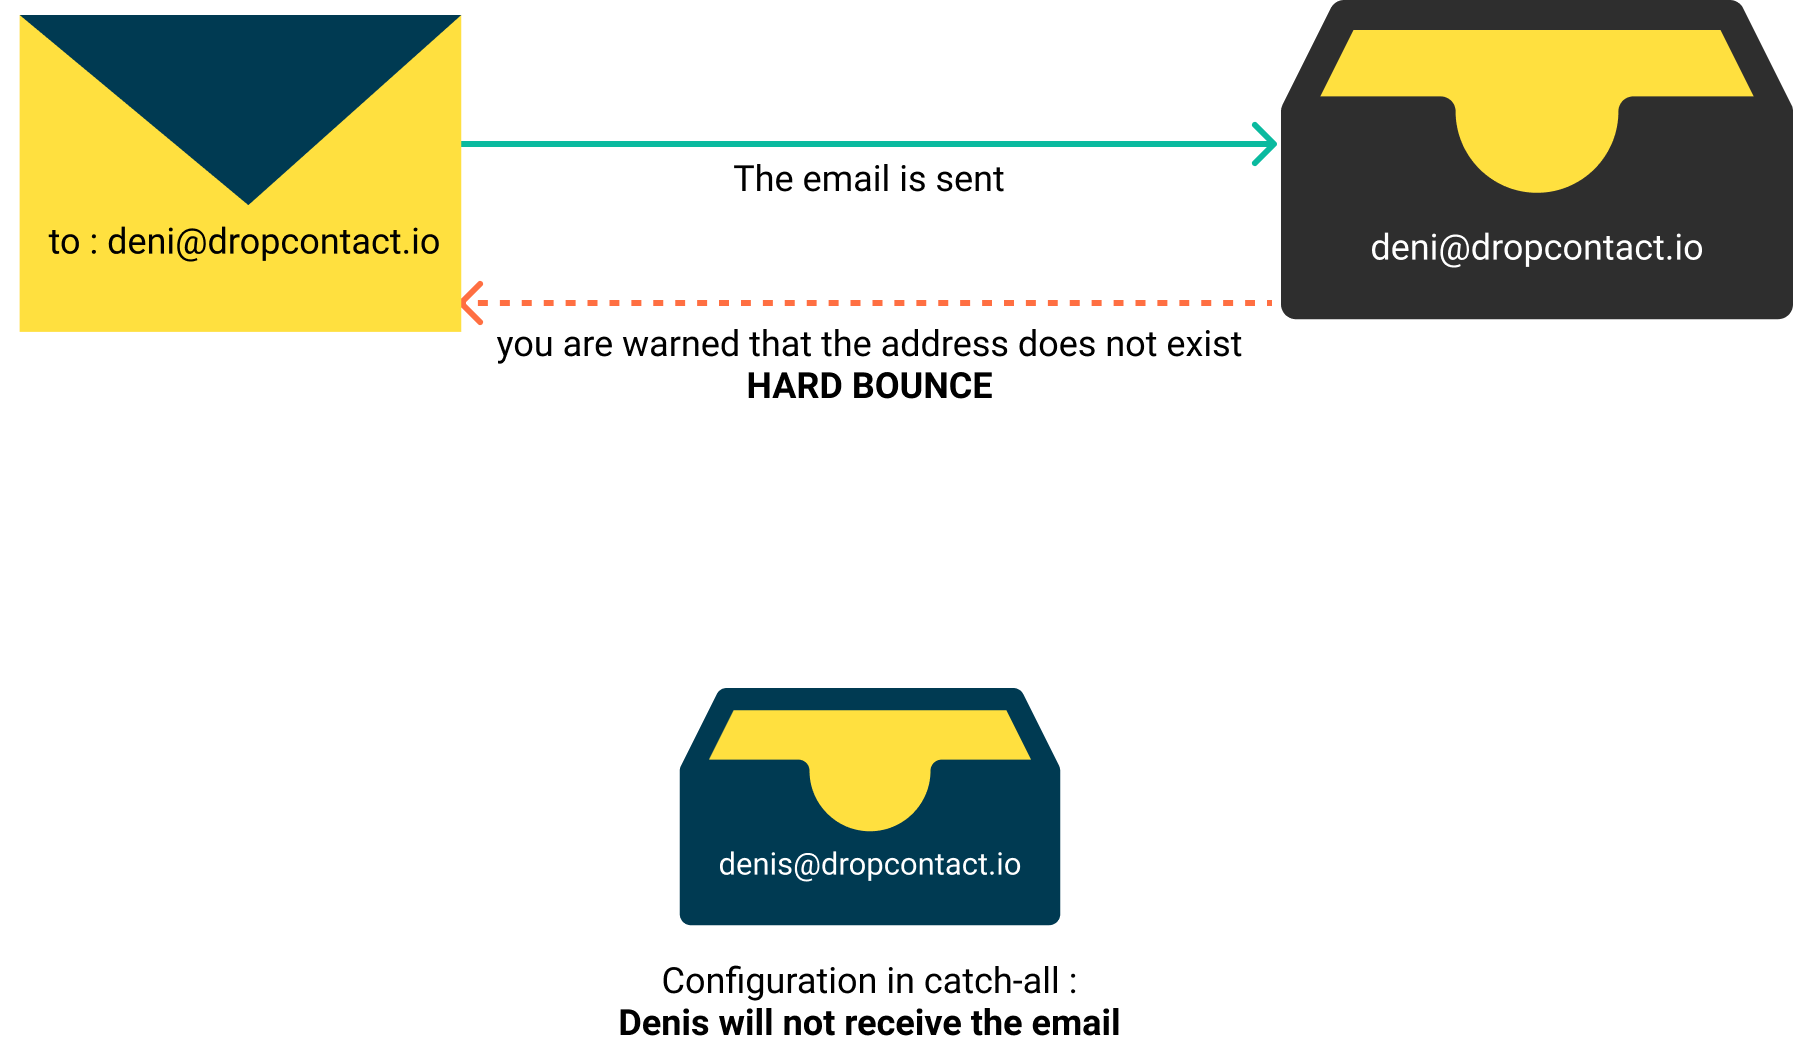 Setting up the catch-all email domain - with bounce